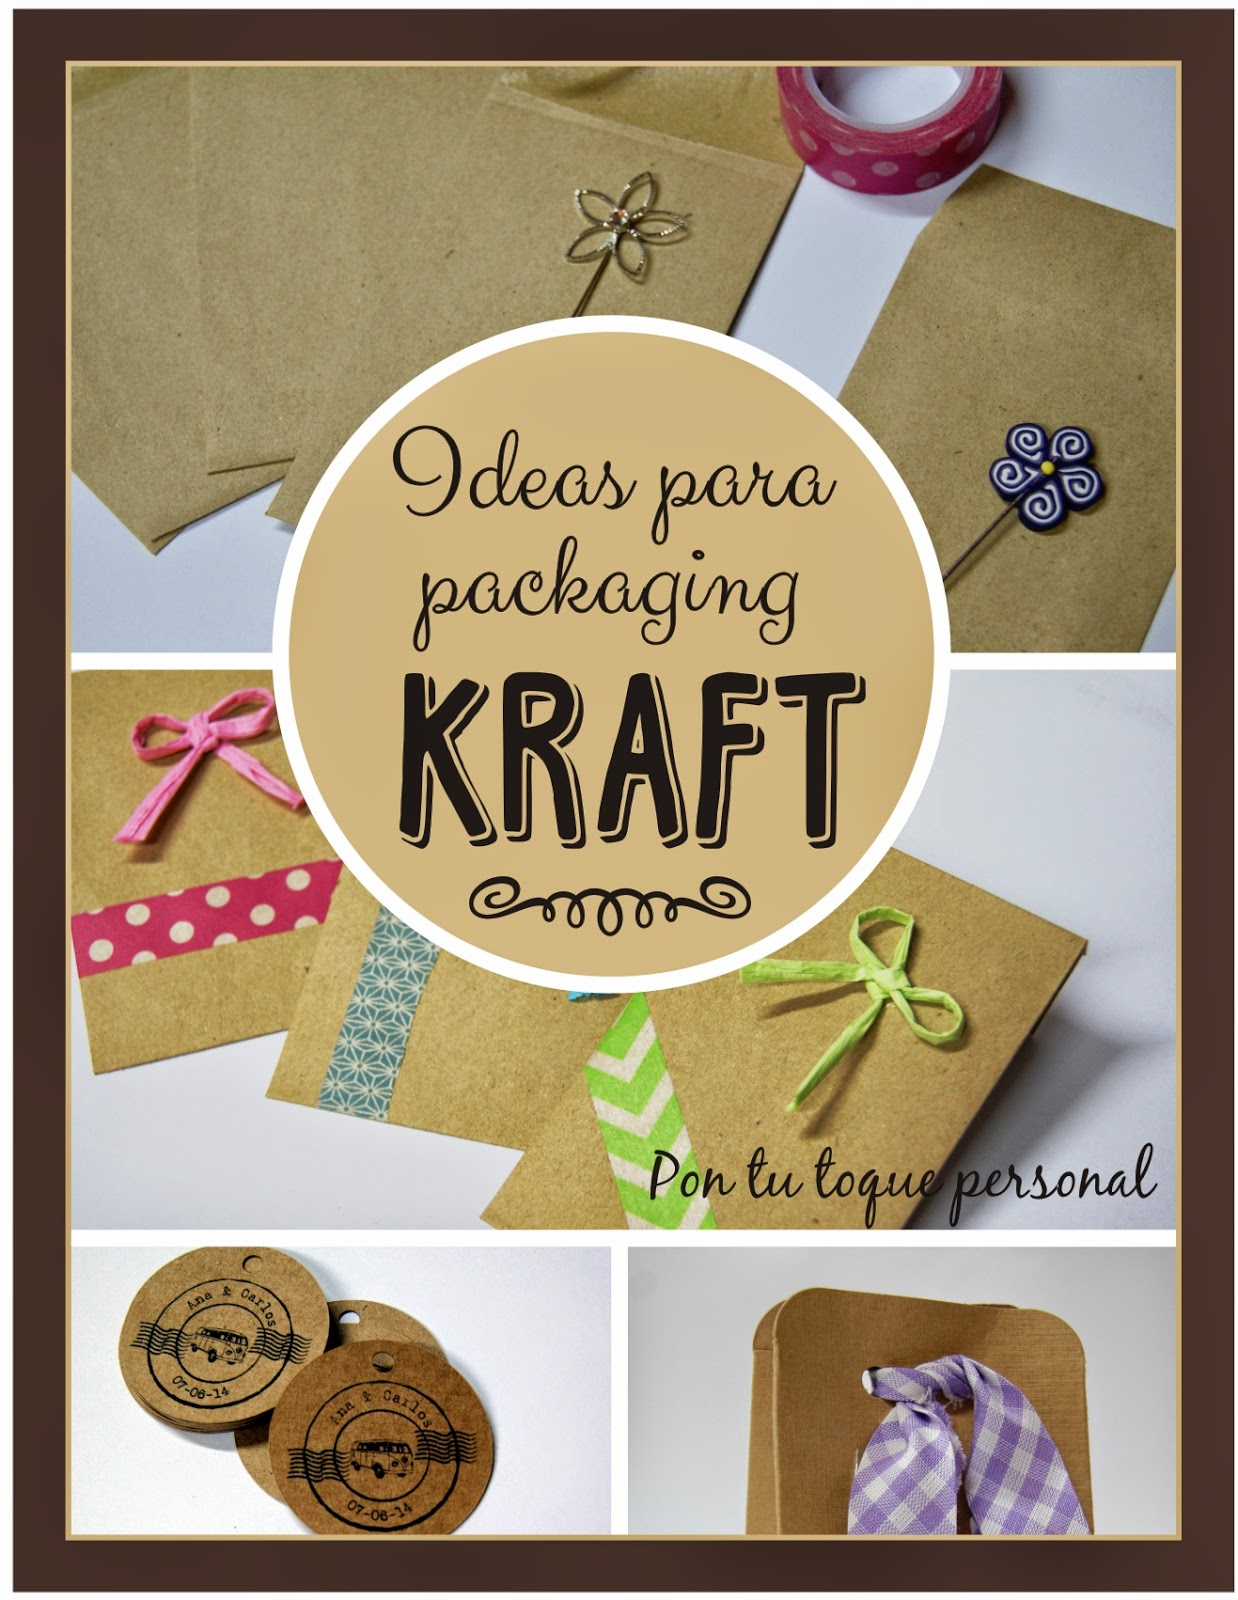 Ideas para packaging de boda con estilo kraft